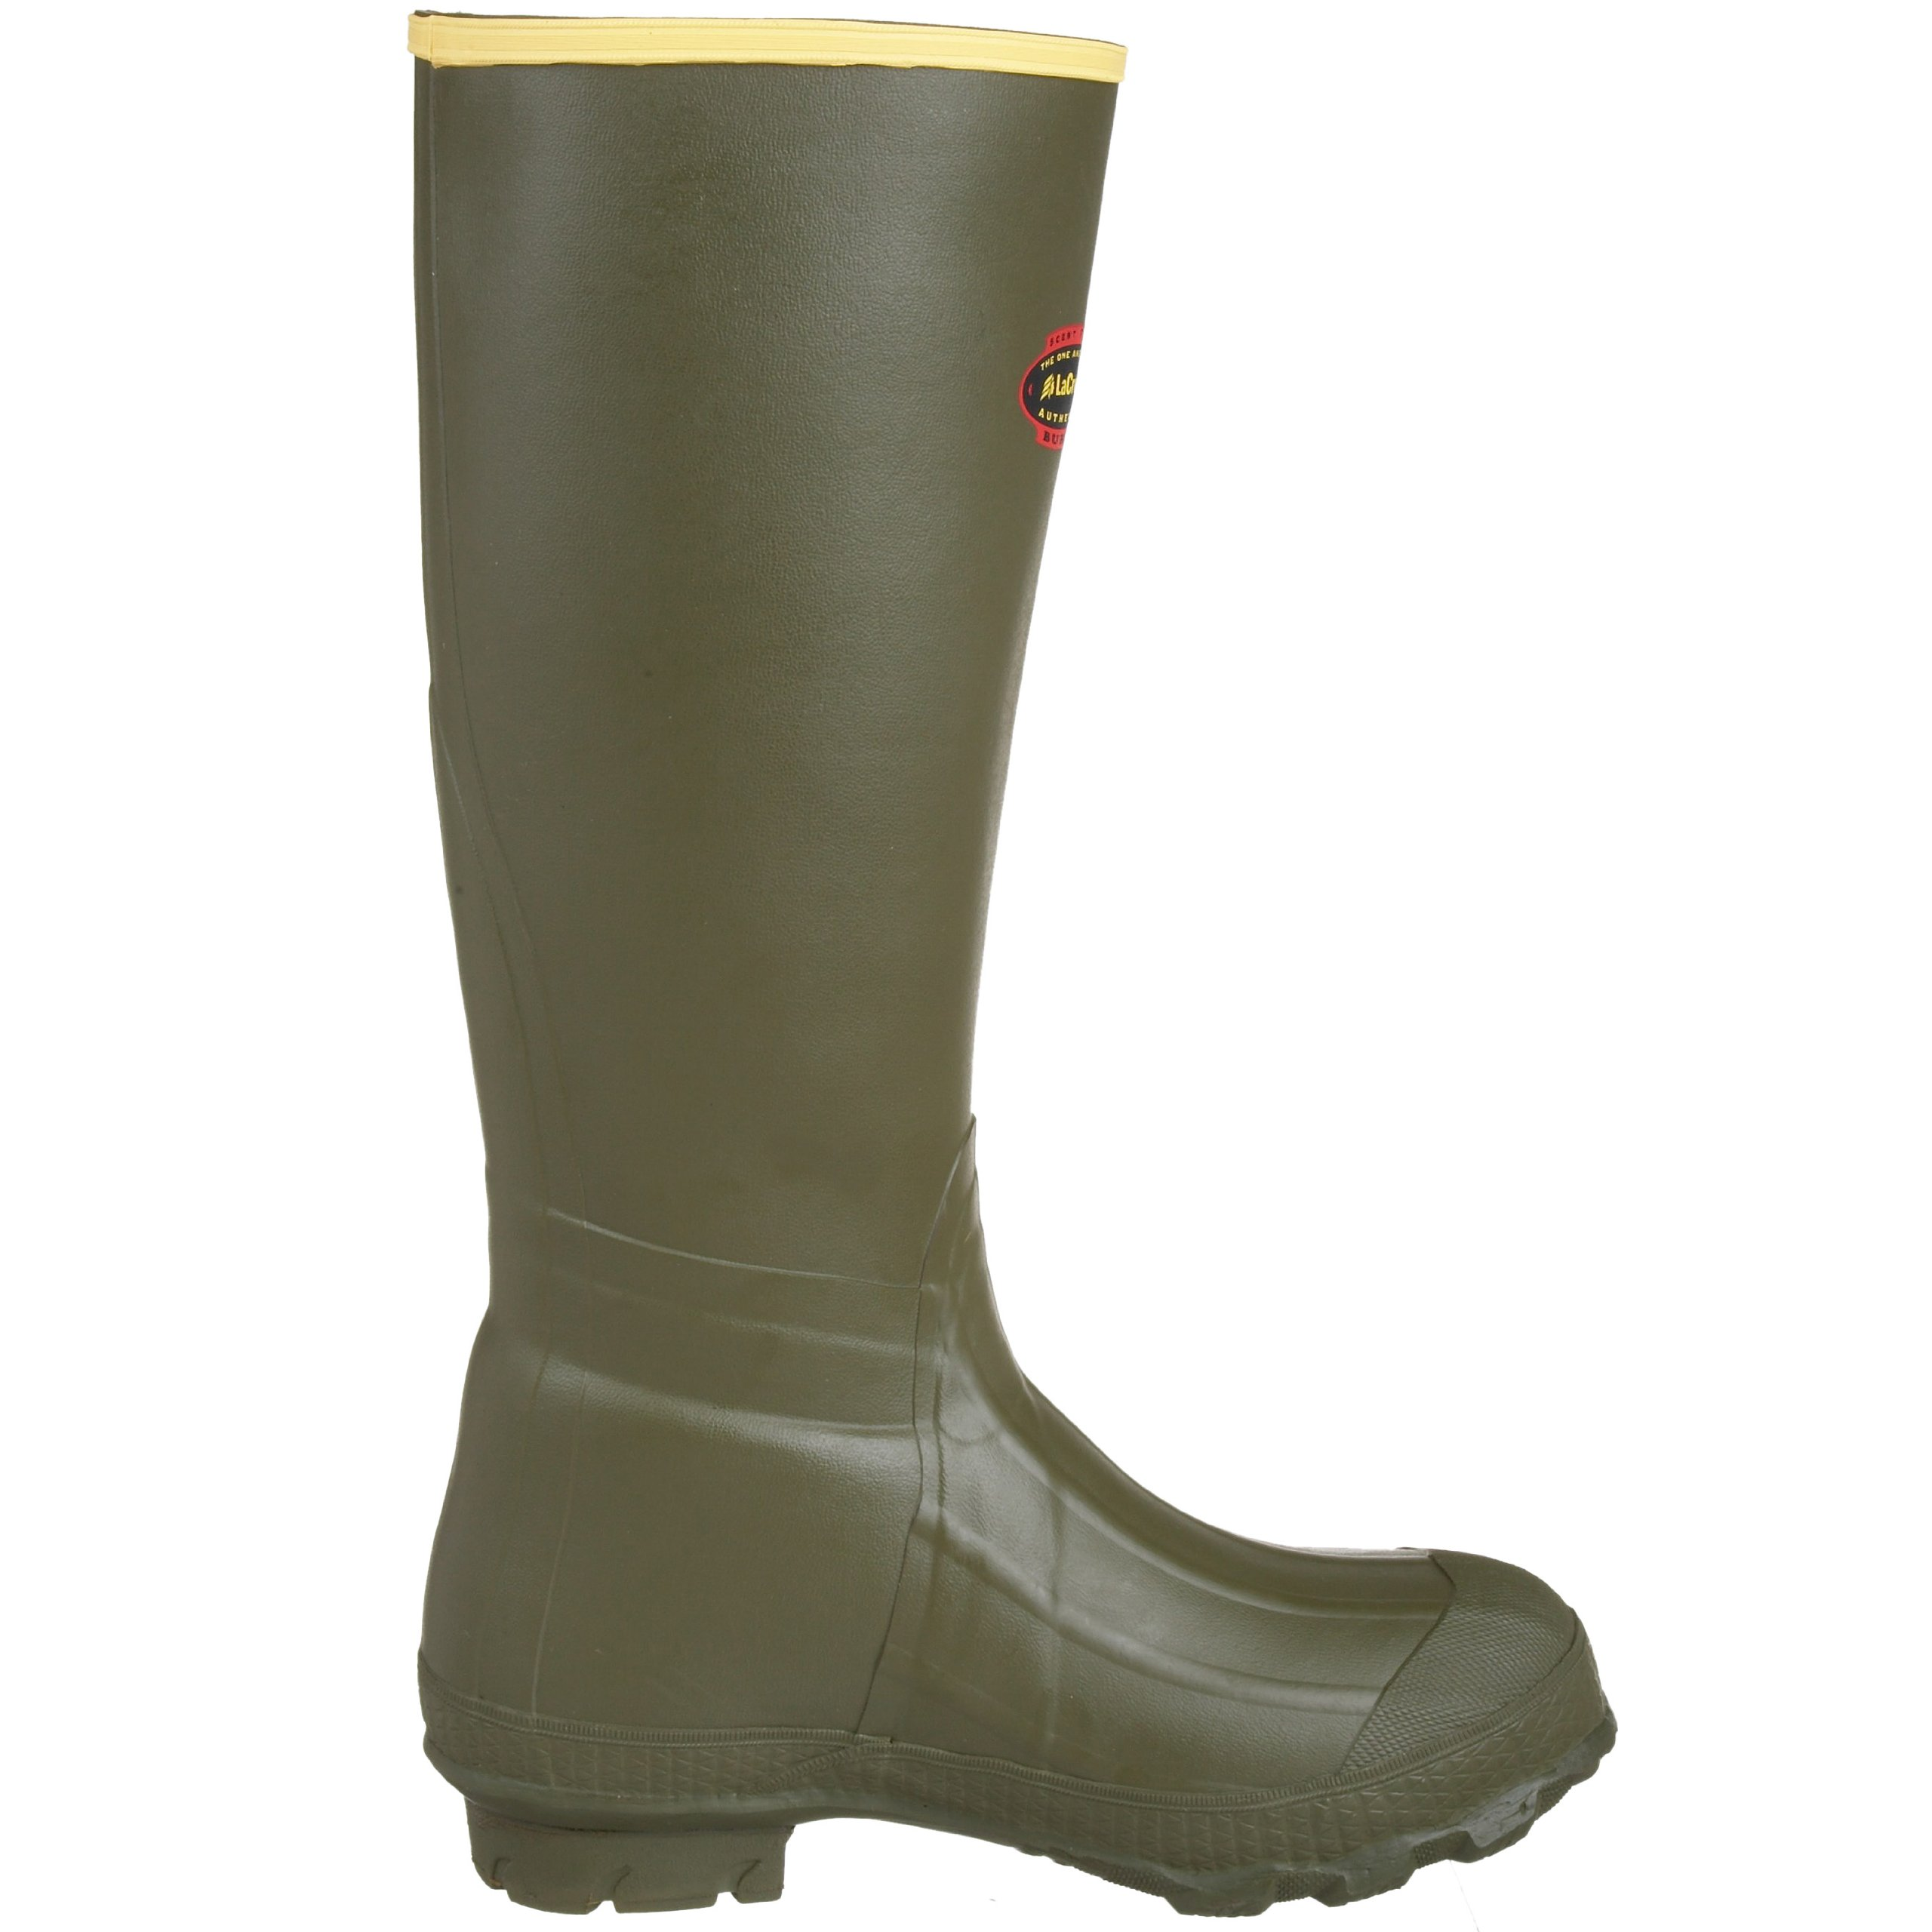 LaCrosse Men's 18'' Burly Classic Hunting Boot,OD Green,5 M US by Lacrosse (Image #6)